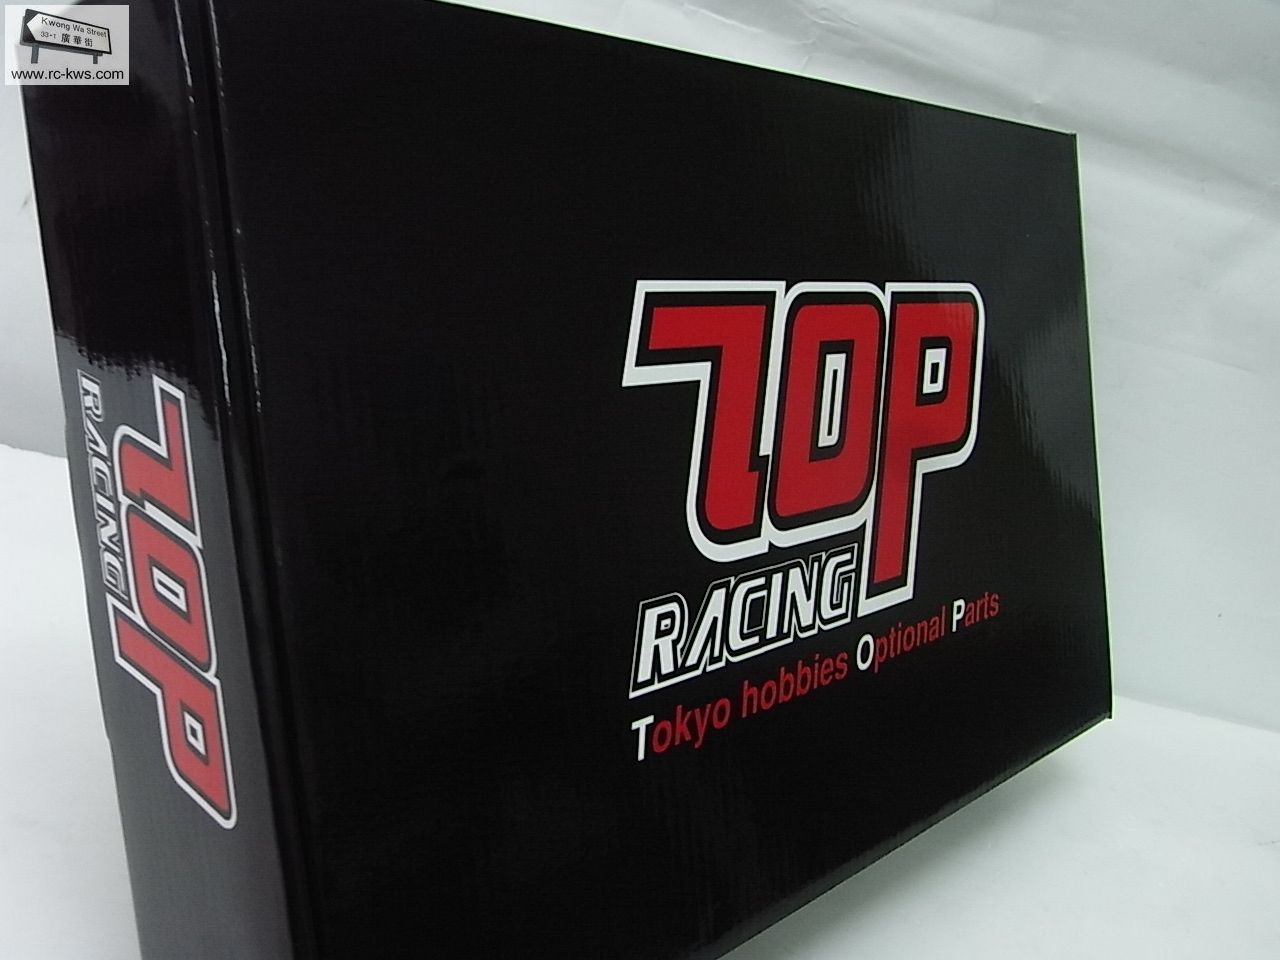 453486d1242459950-new-t-o-p-racing-photon-1-10-ep-touring-car-1.jpg